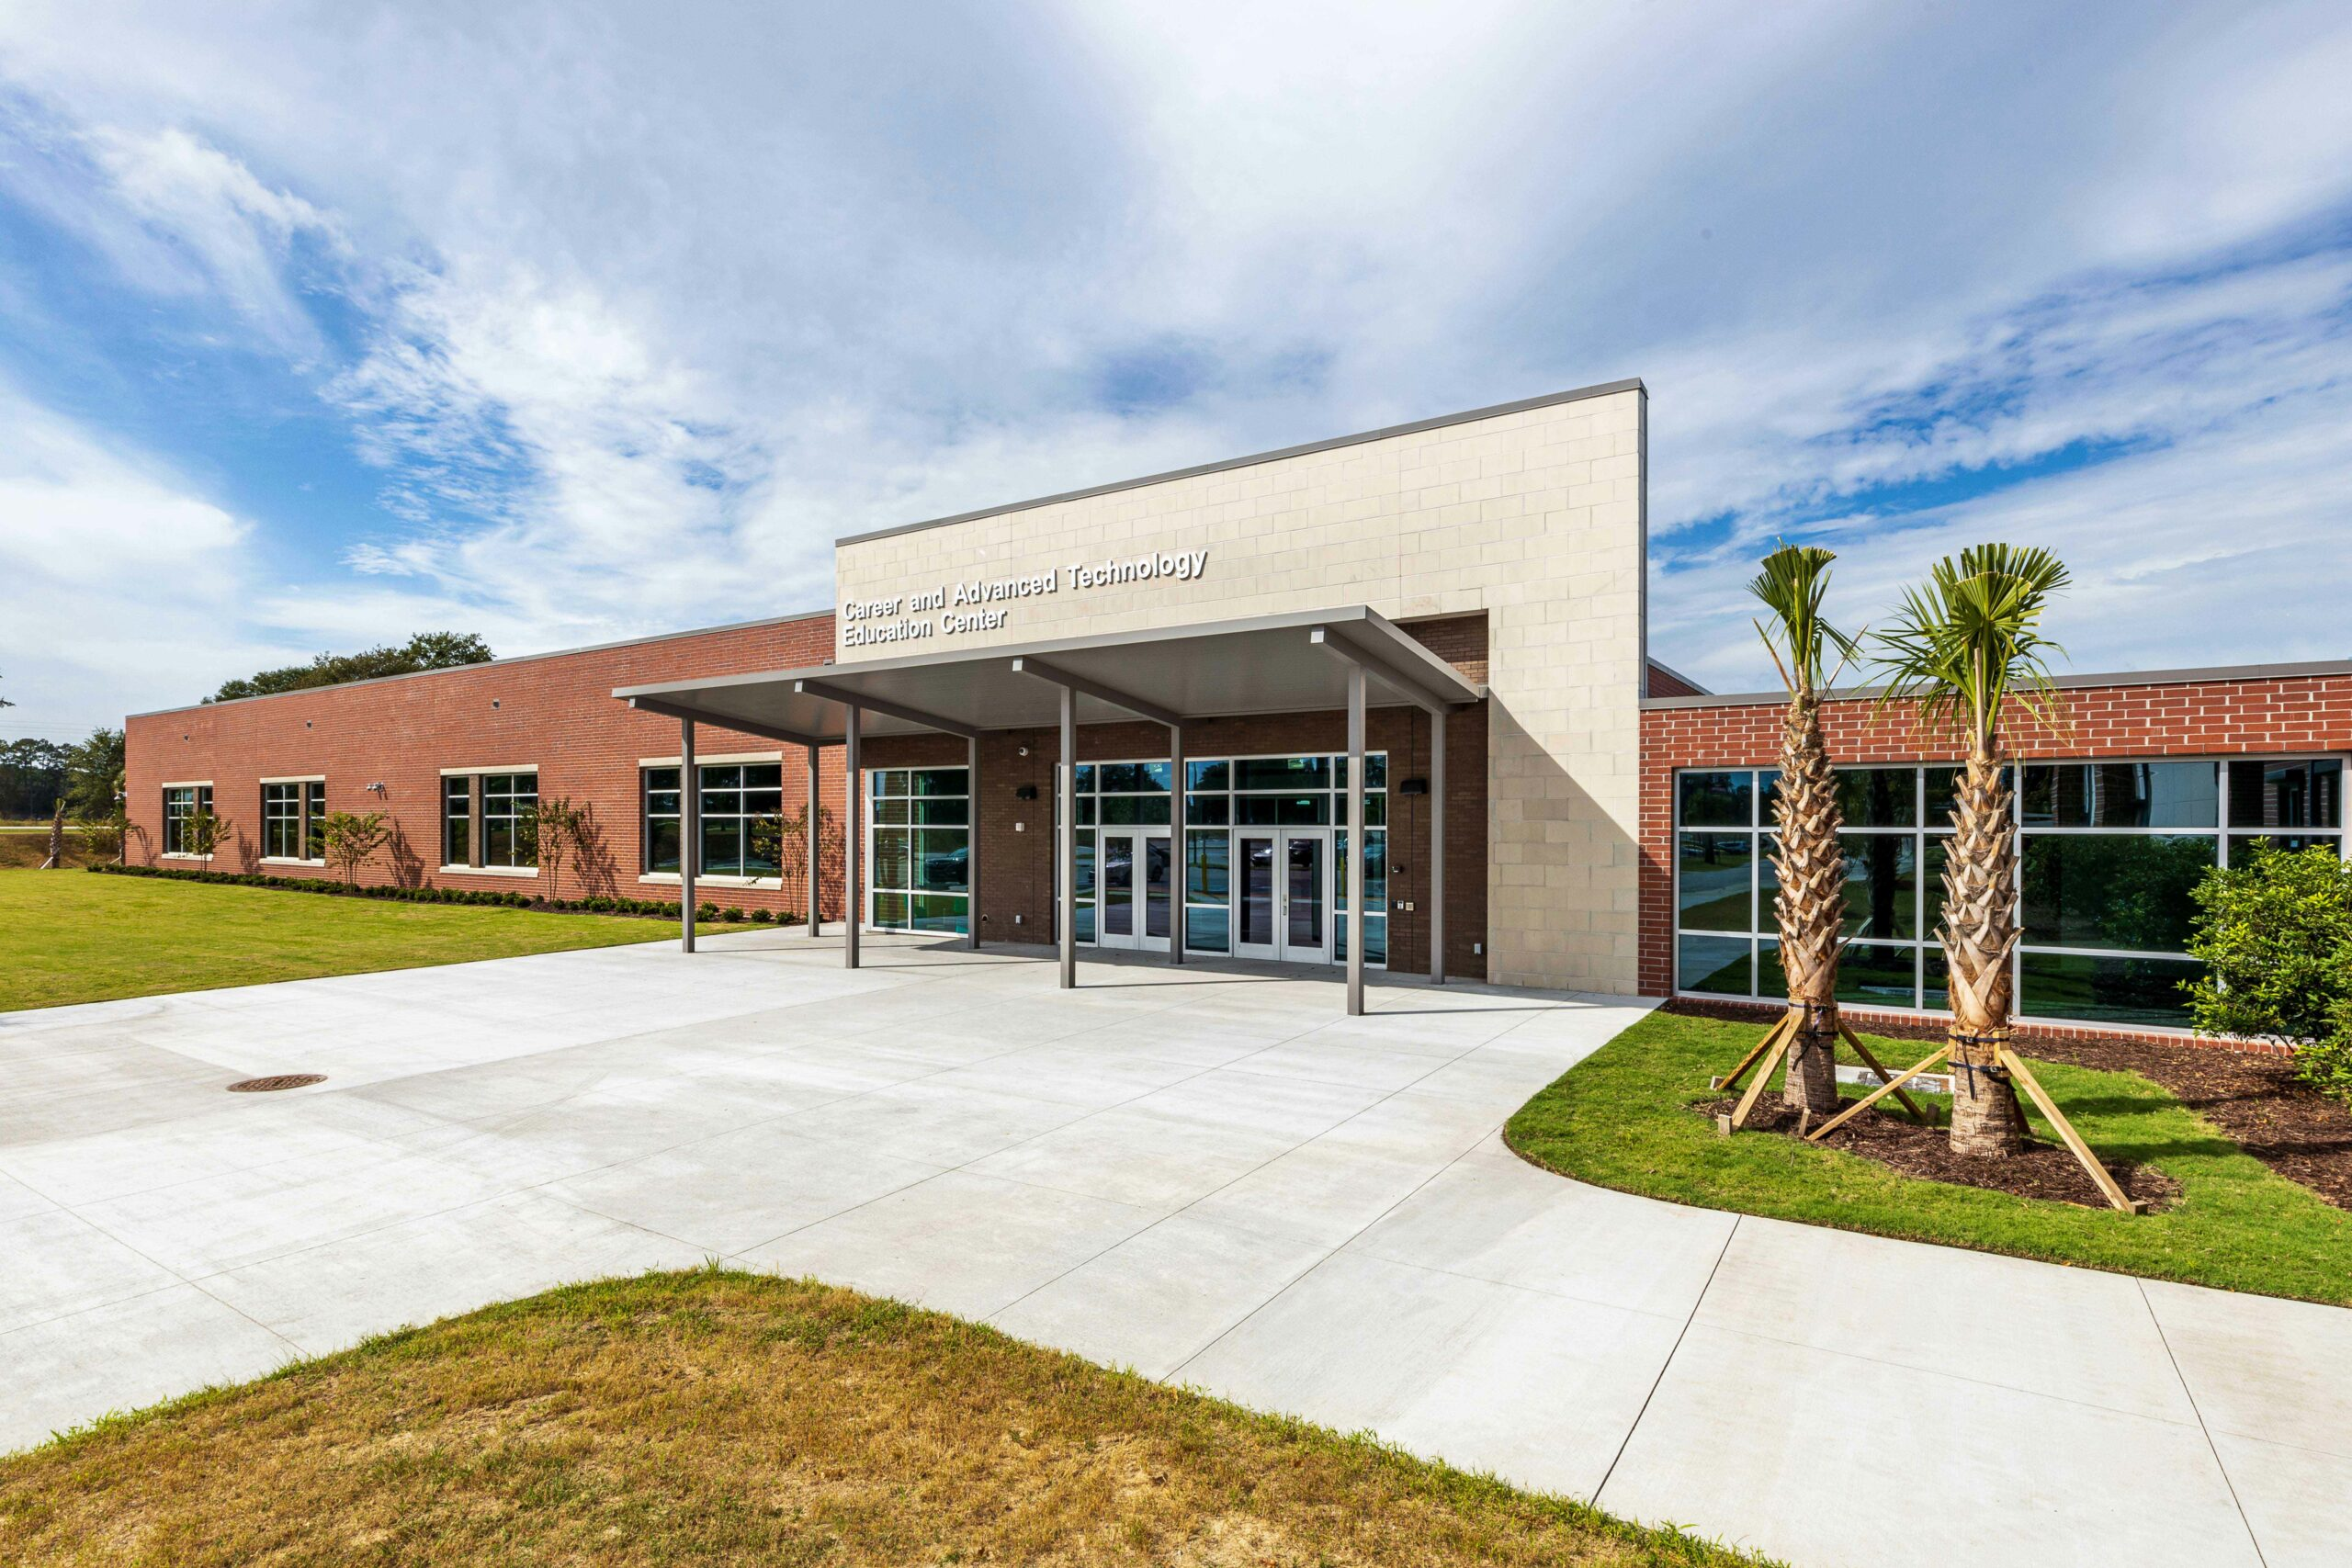 Jasper County Career and Advanced Technology Education Center